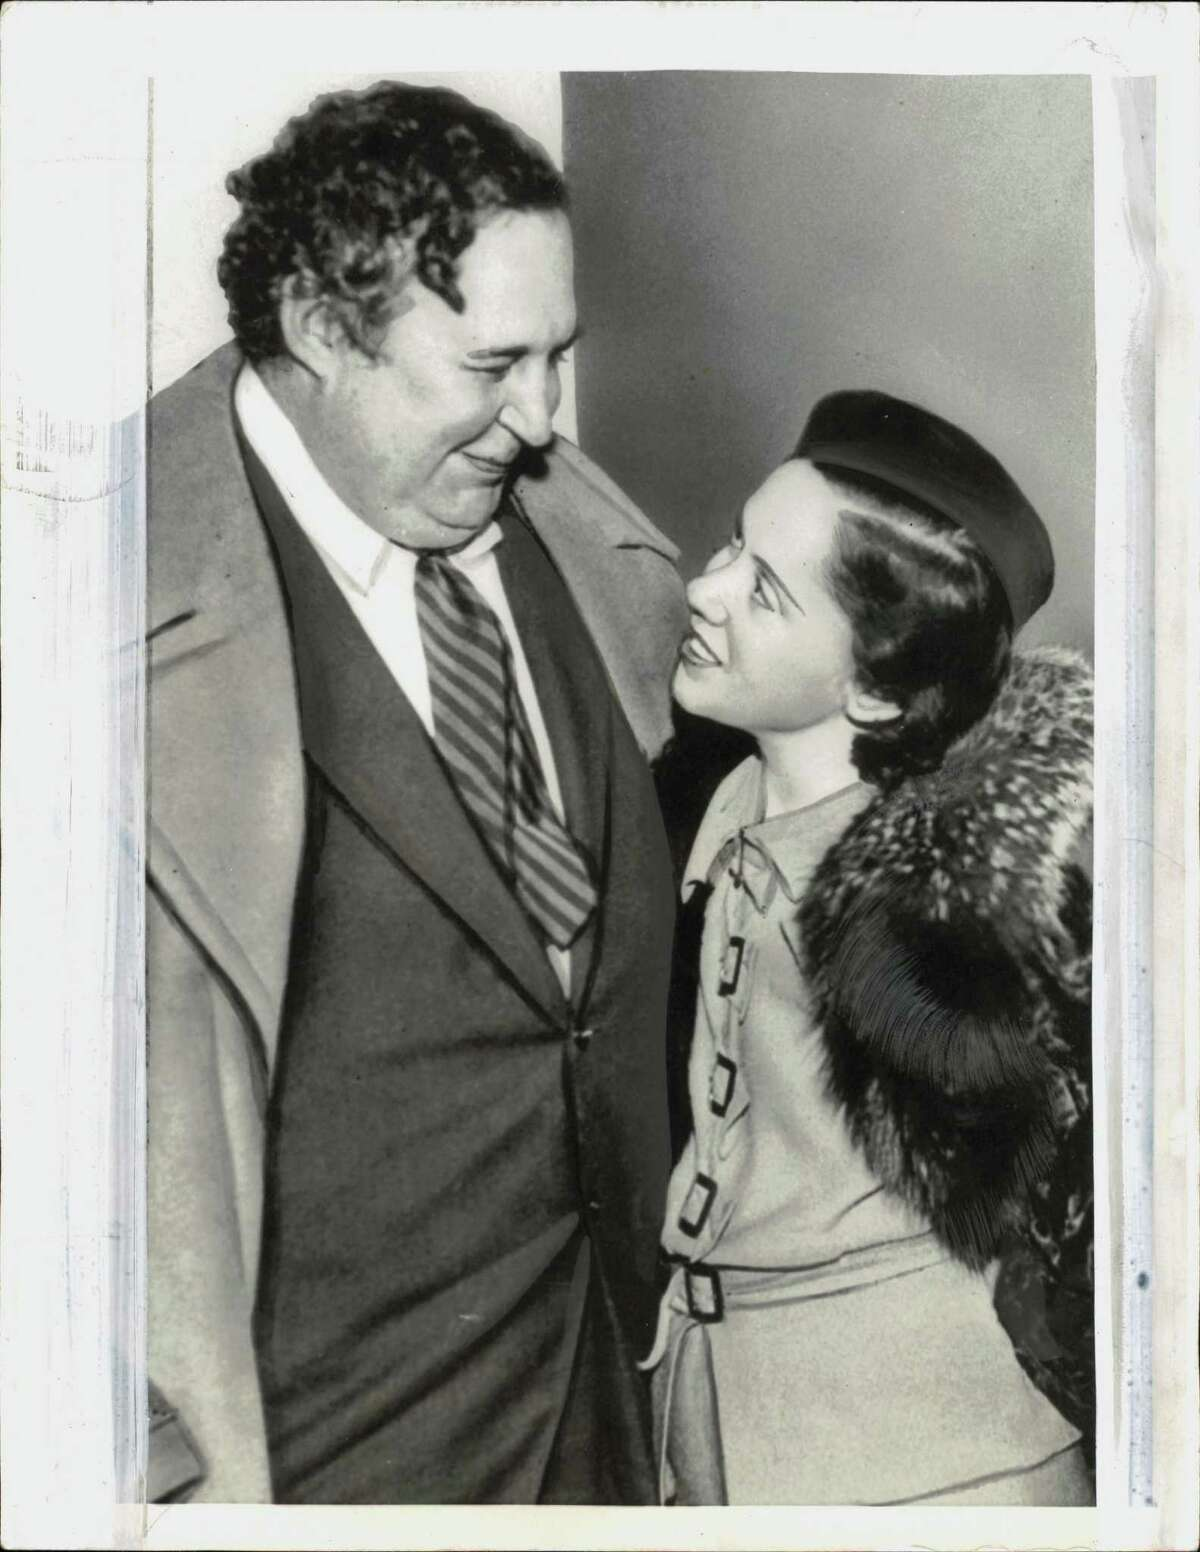 Heywood Broun, left, with his second wife.